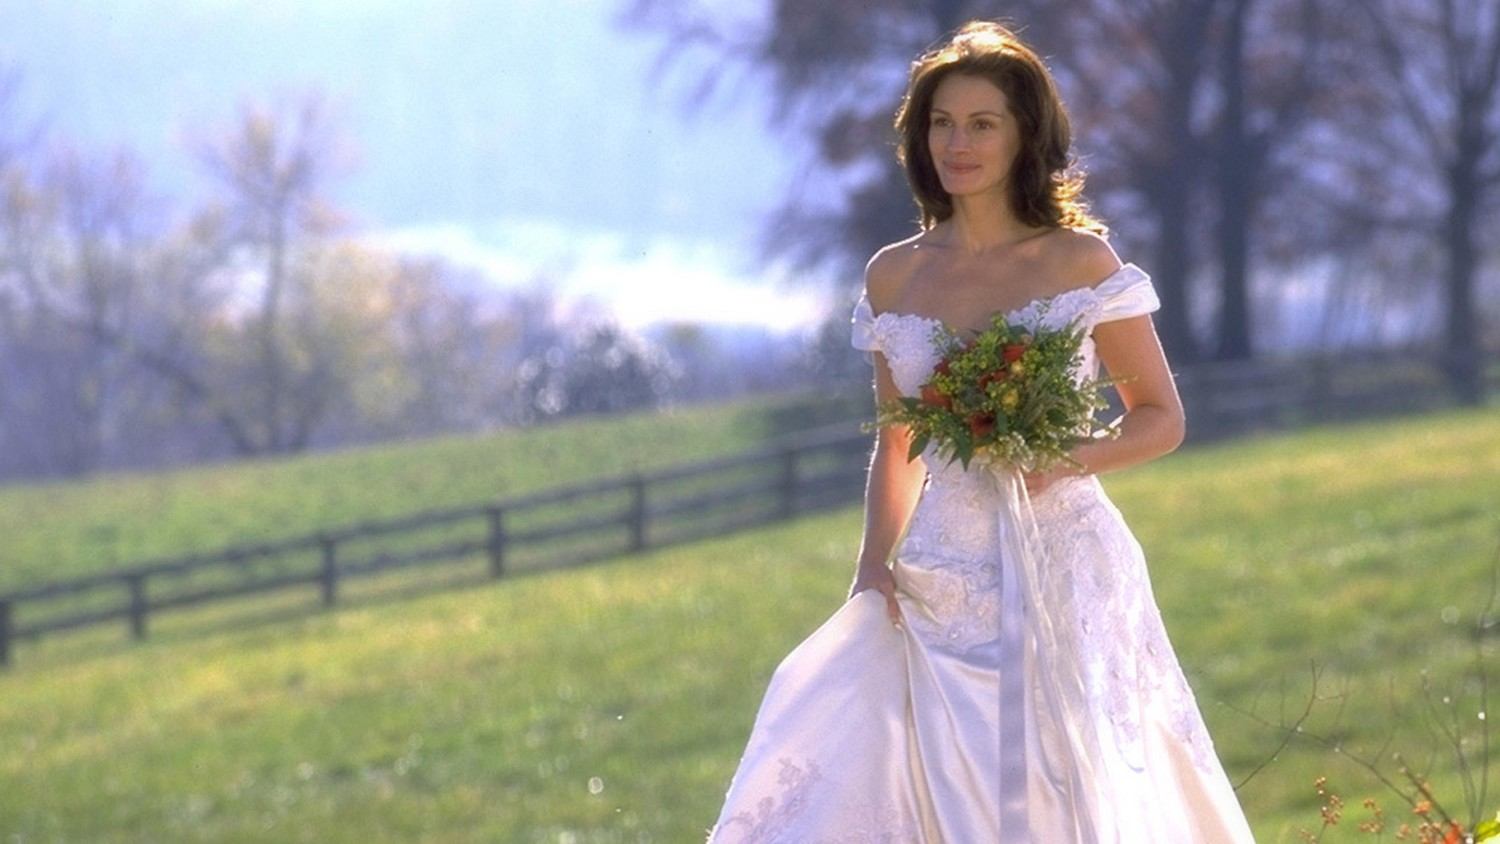 Ð?аÑ?Ñ?инки по запÑ?оÑ?Ñ? RUNAWAY BRIDE movie wedding dress